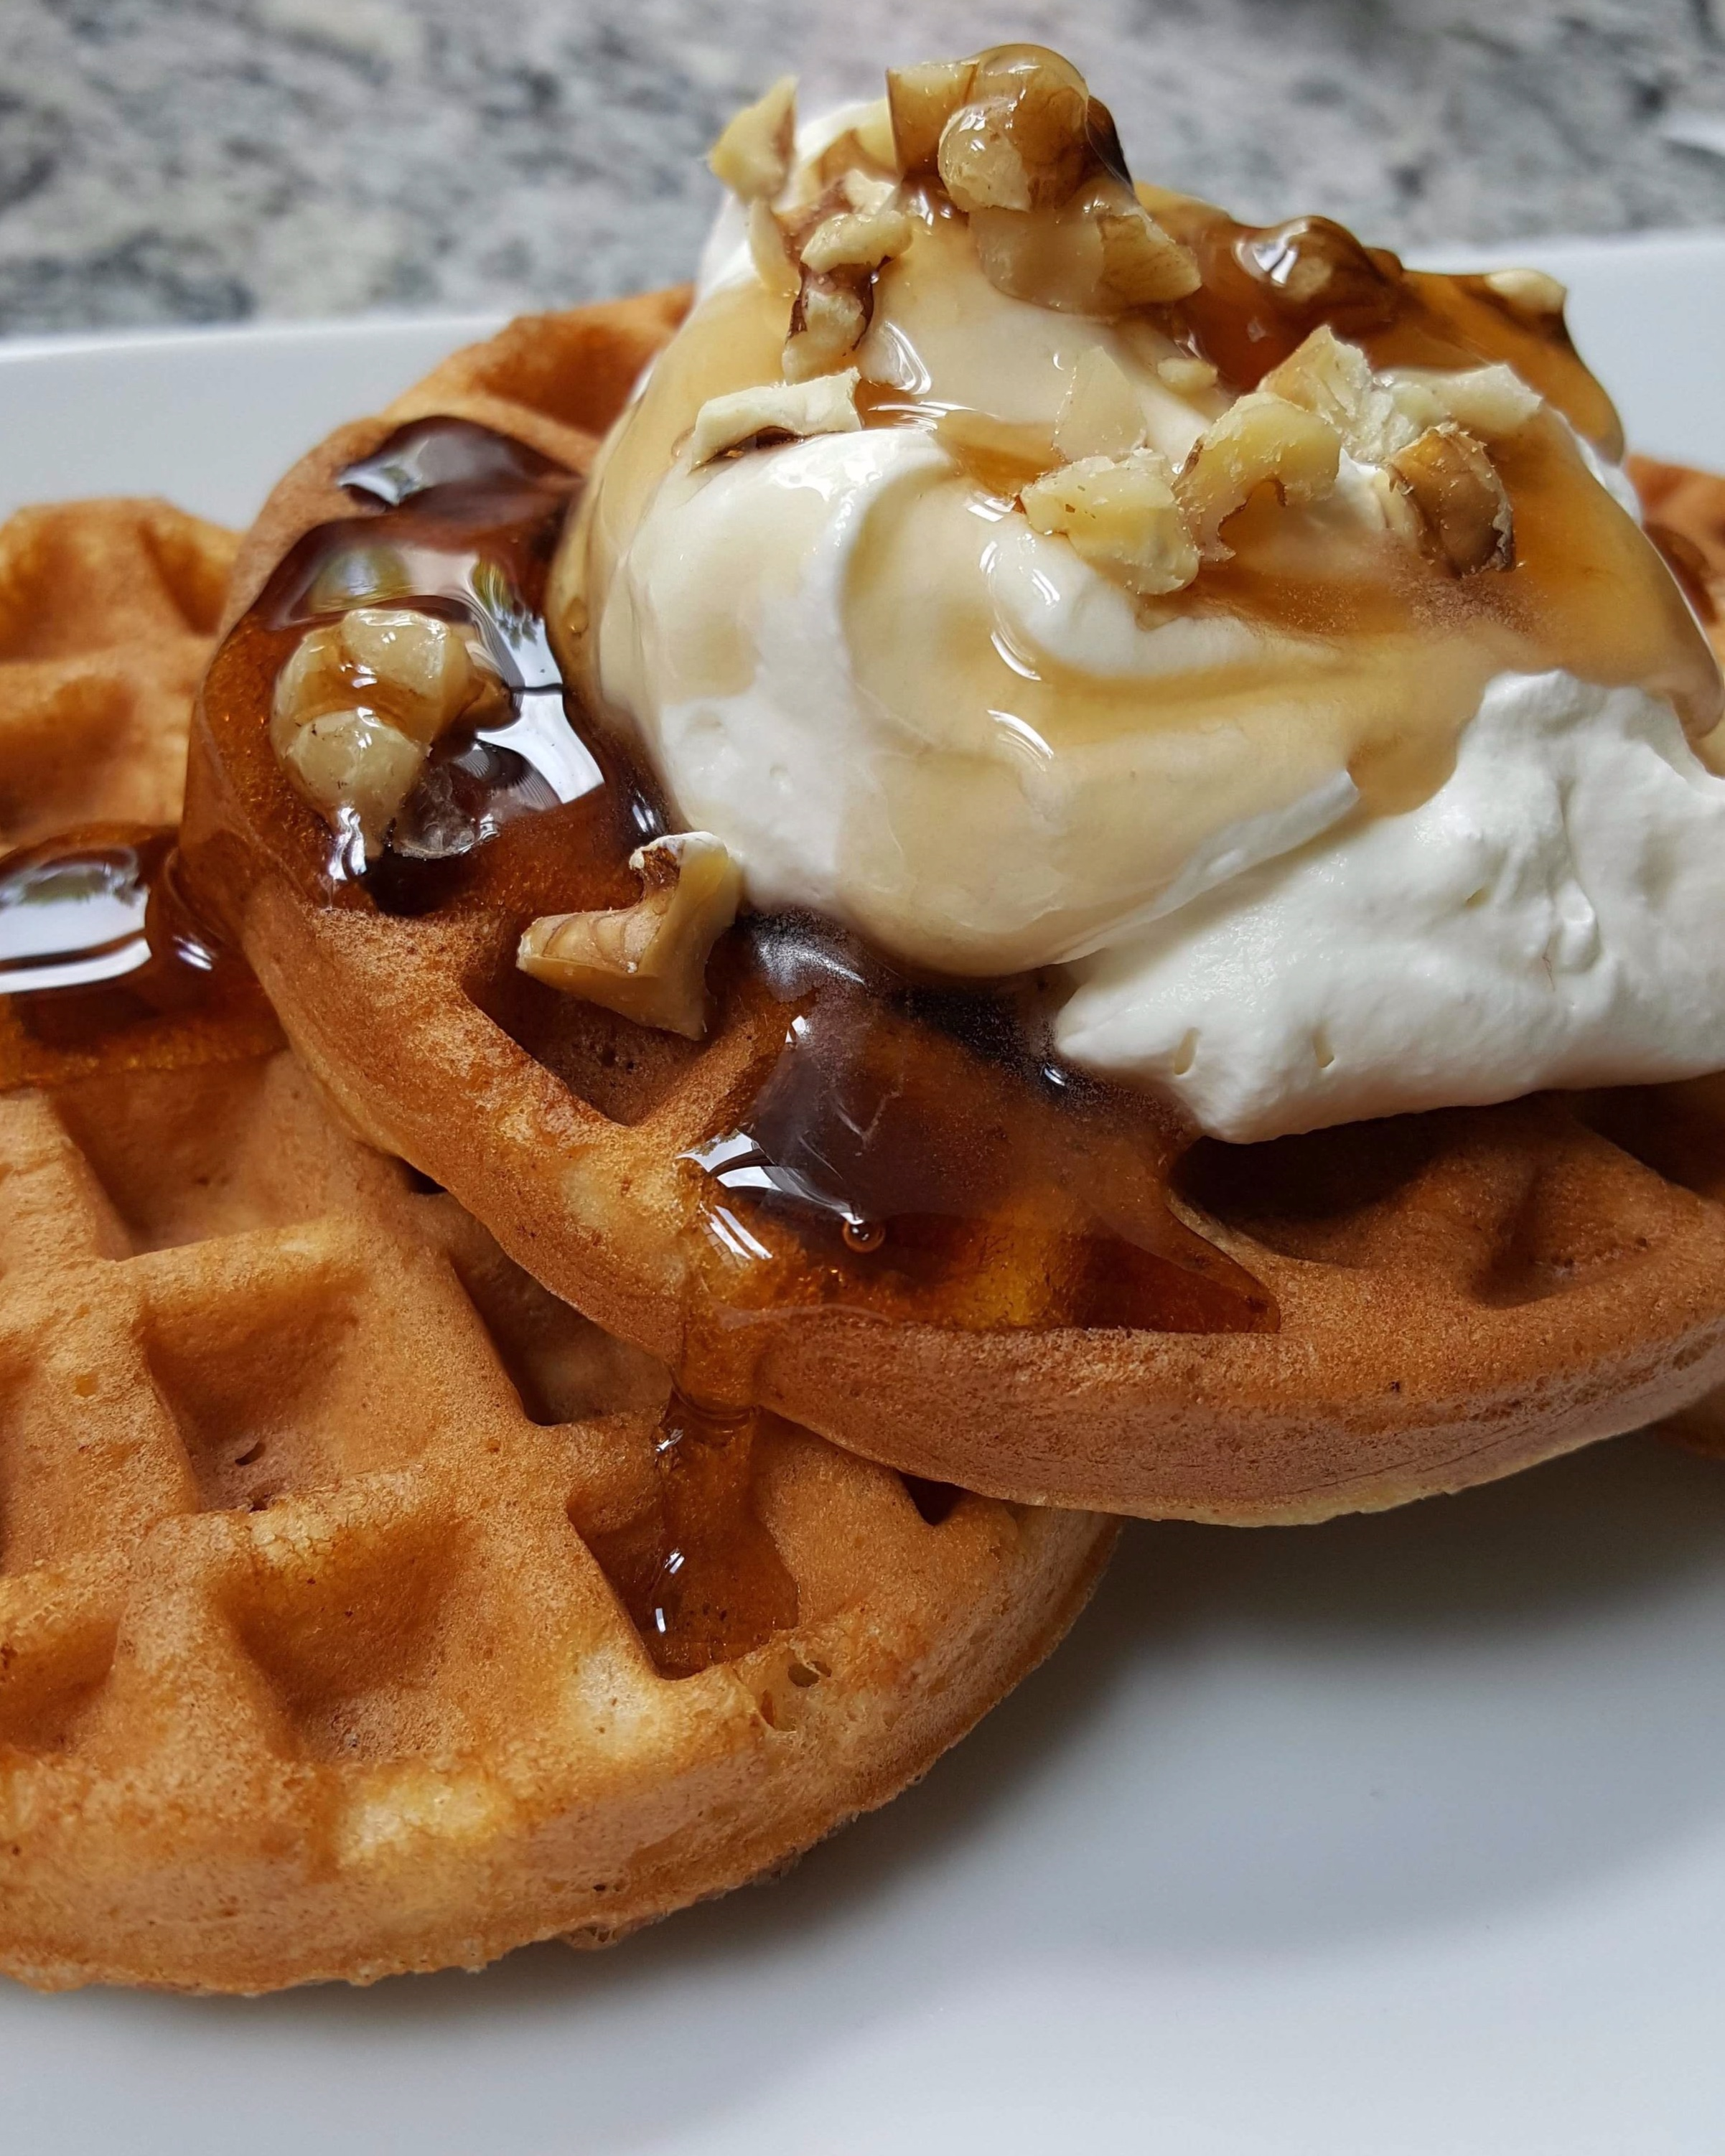 keto waffles smothered in Choc Zero maple syrup and sweetened whipped heavy cream.